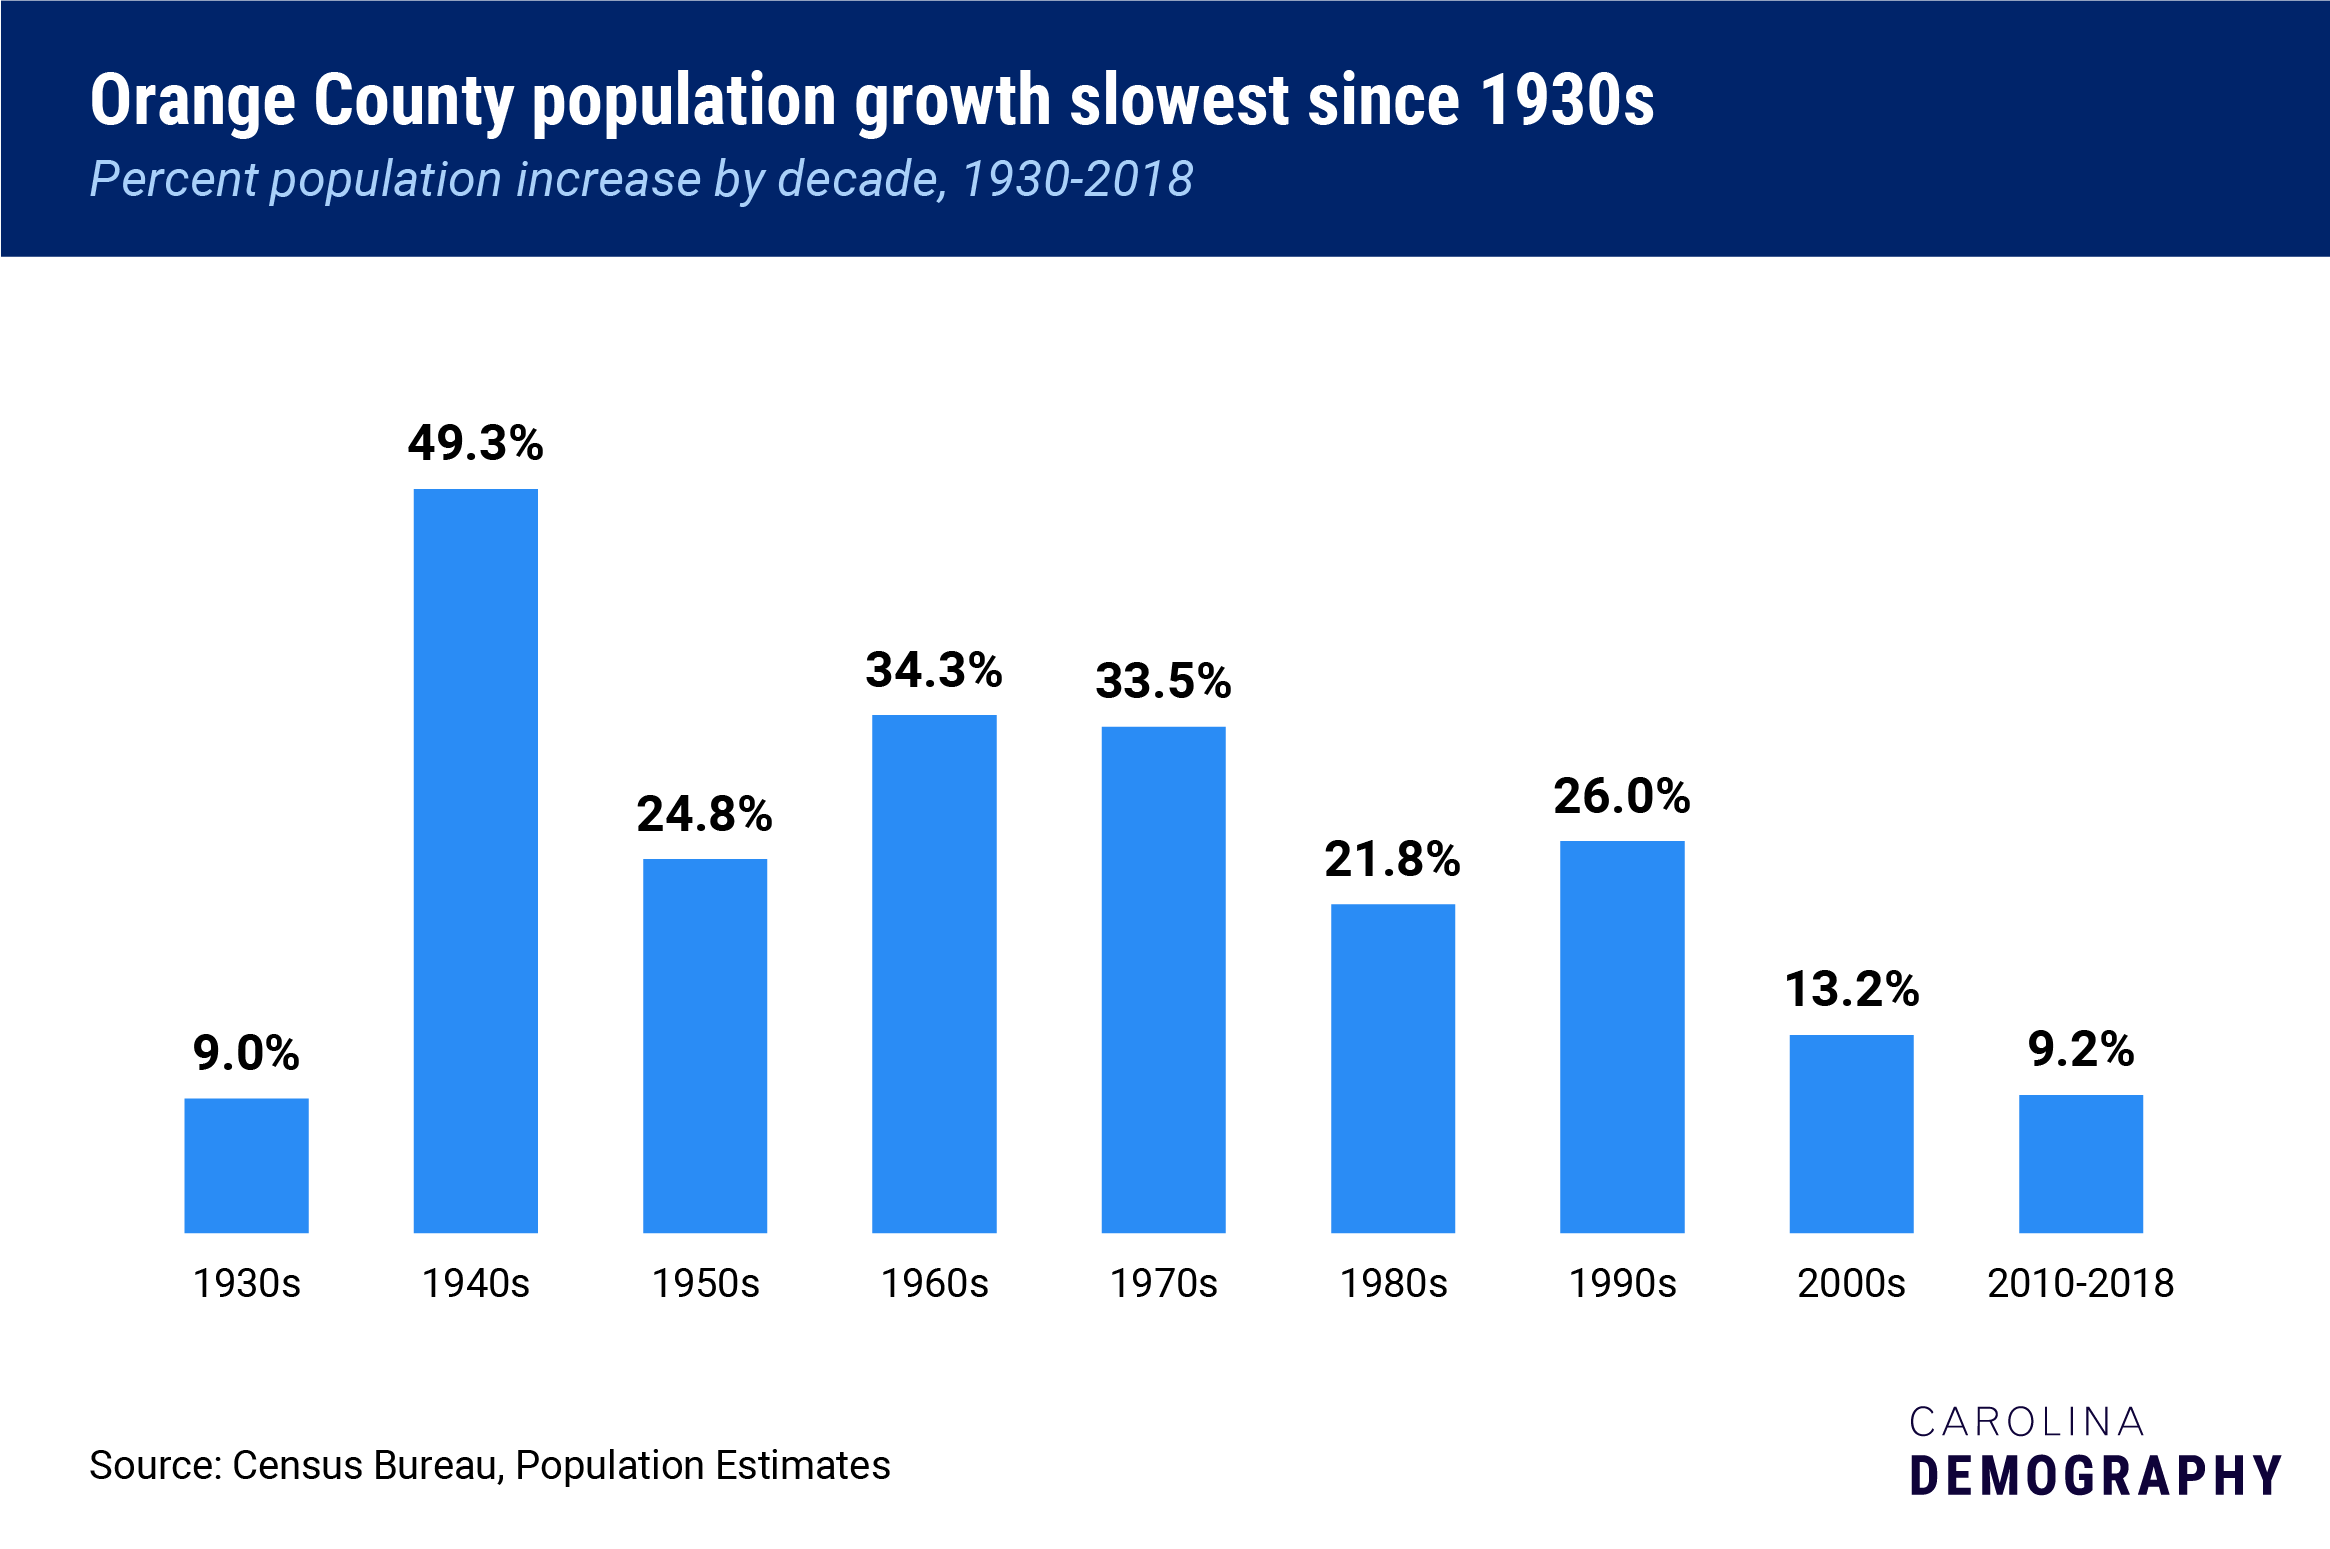 Orange County population percentage growth slowest since 1930s, Percent population increase by decade, 1930-2018